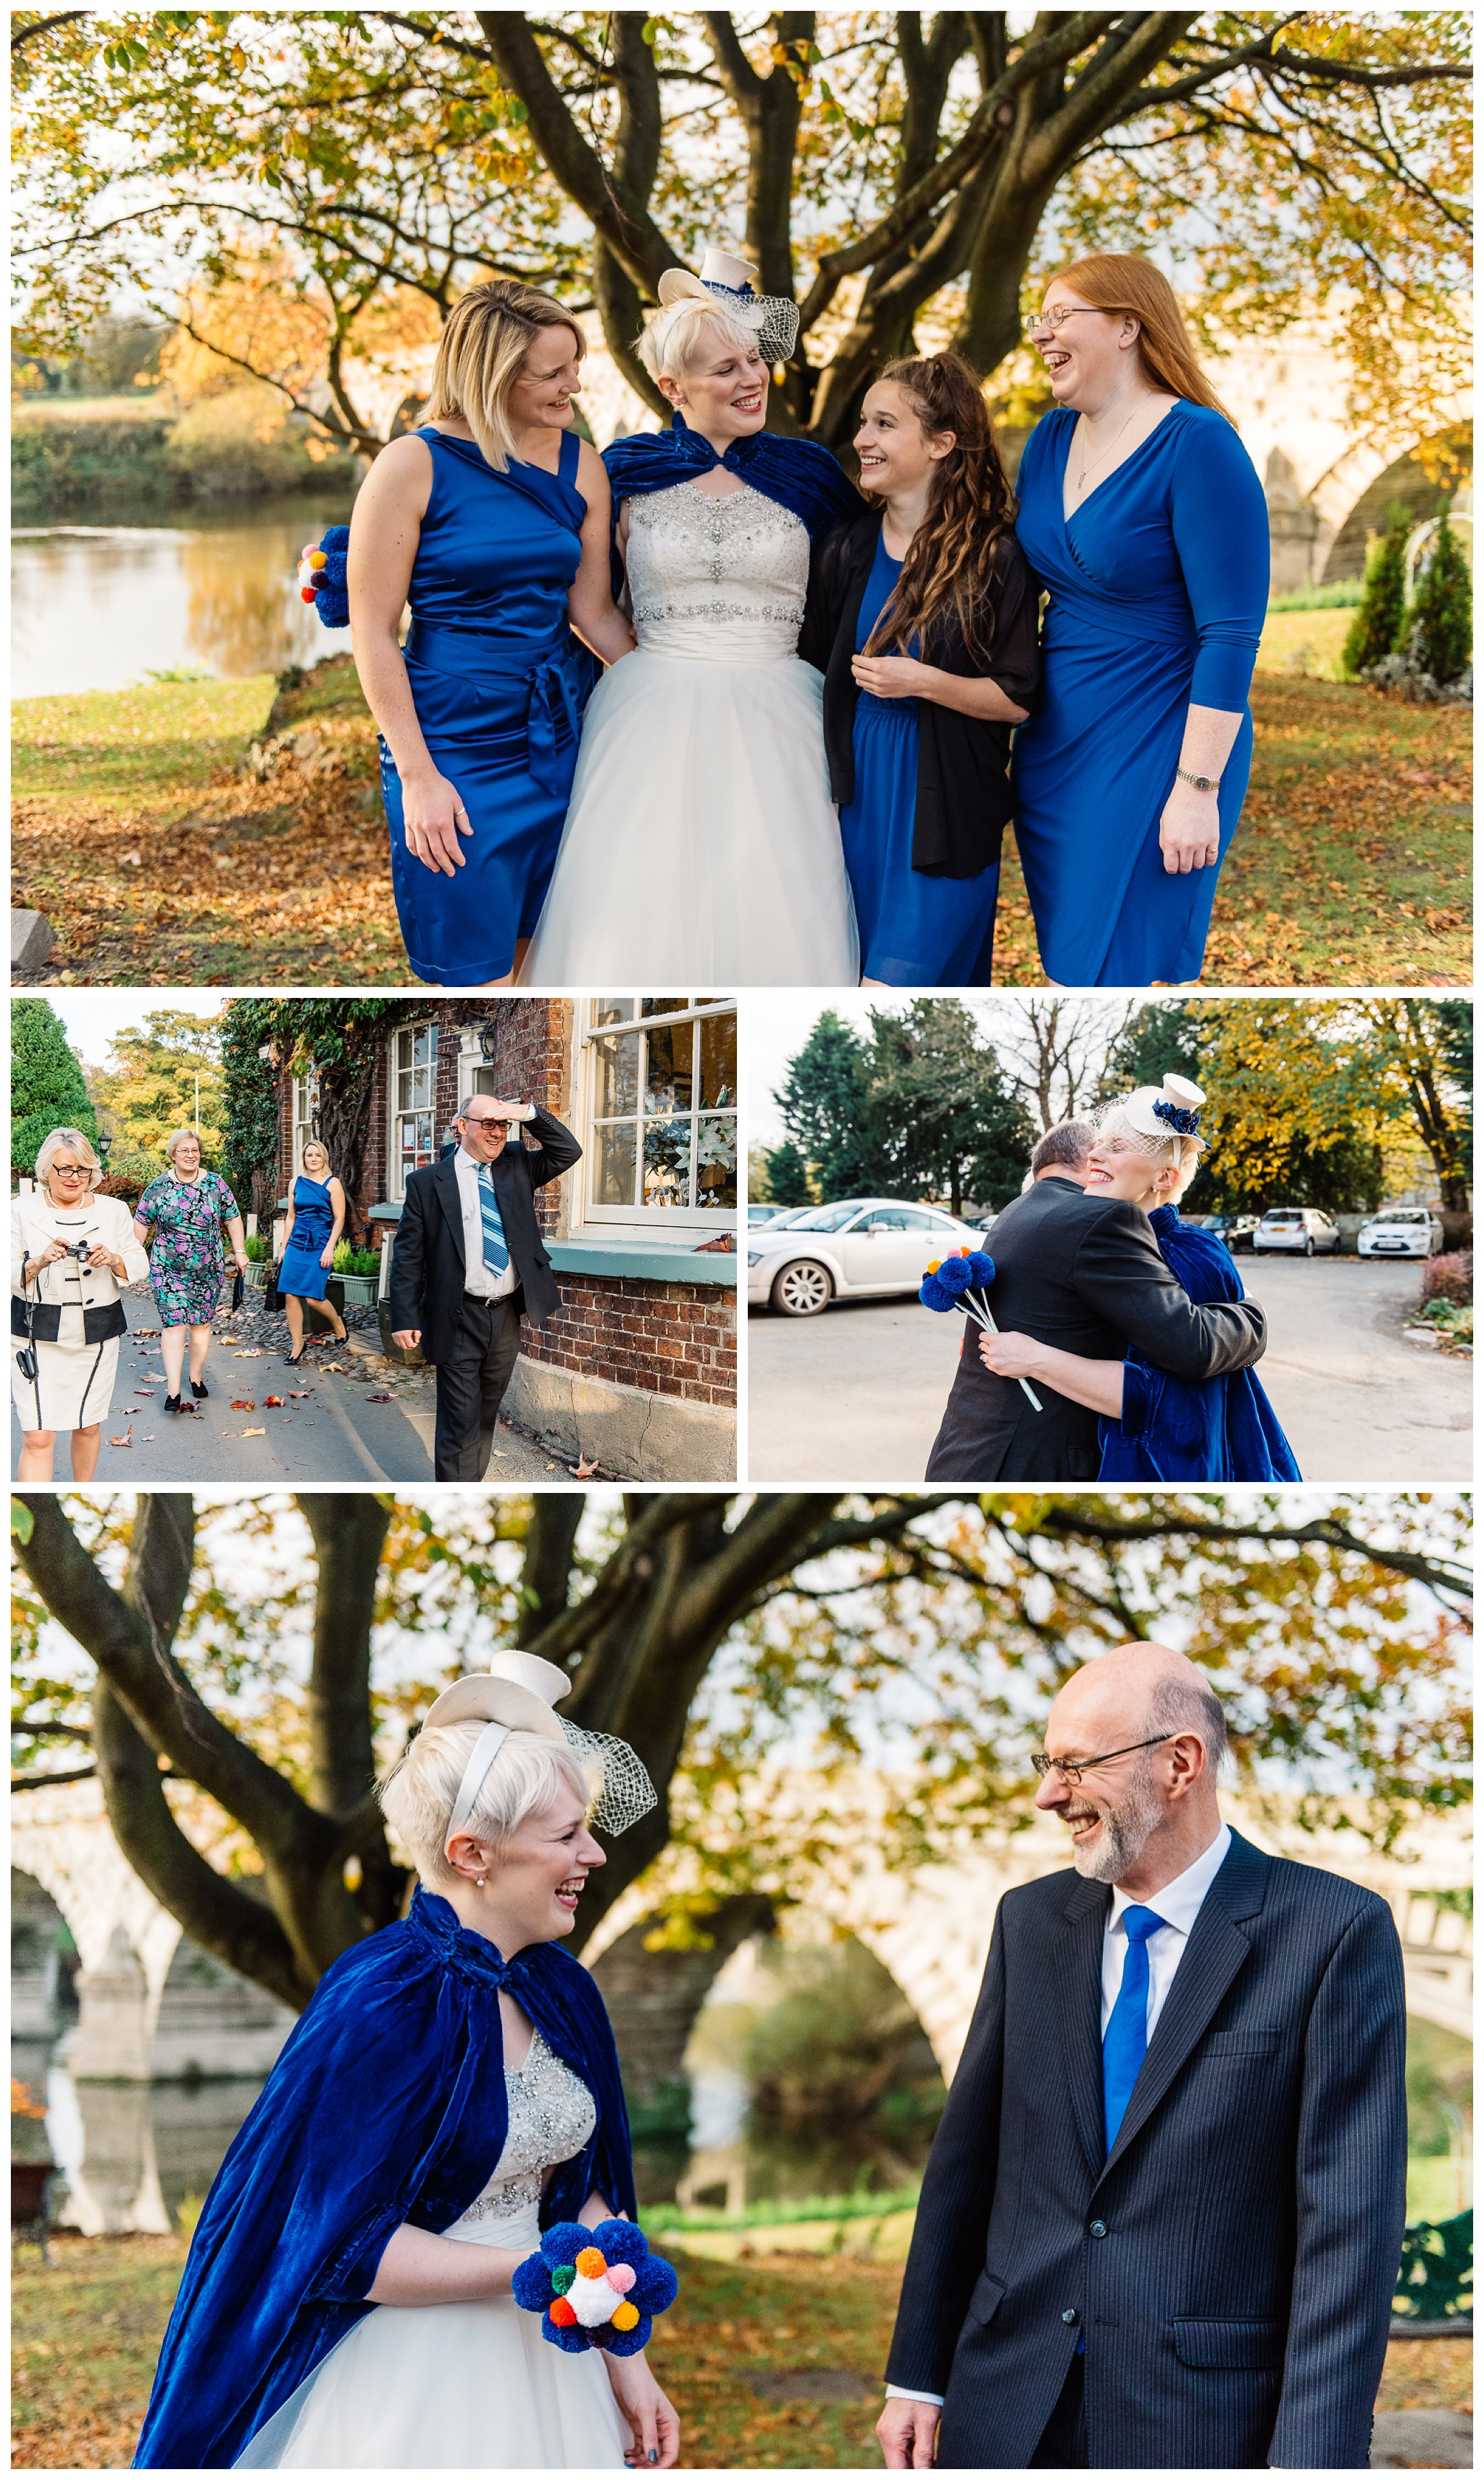 Nikki-Cooper-Photography-Autumn-Wedding-Shrewsbury_0027.jpg